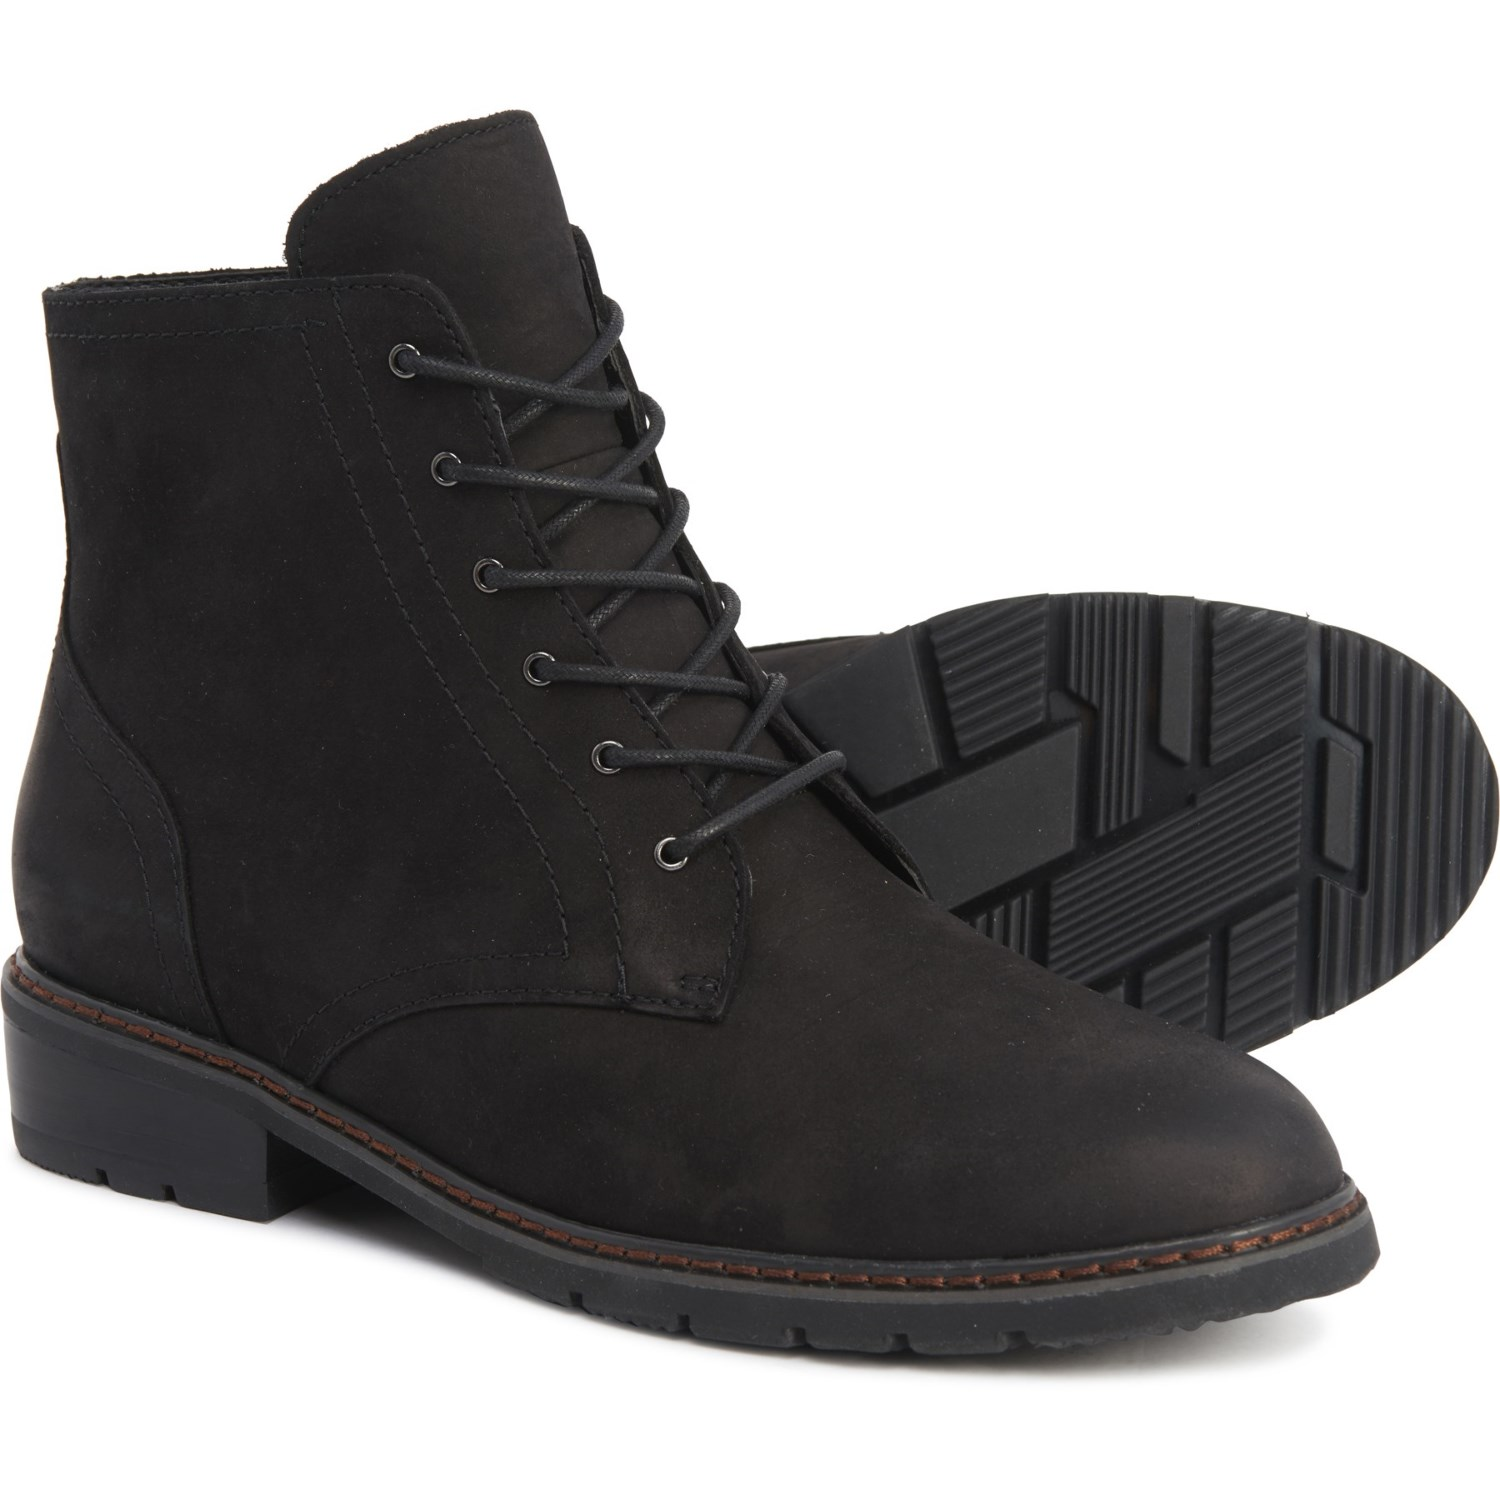 Blondo Vinny Ankle Boots (For Women